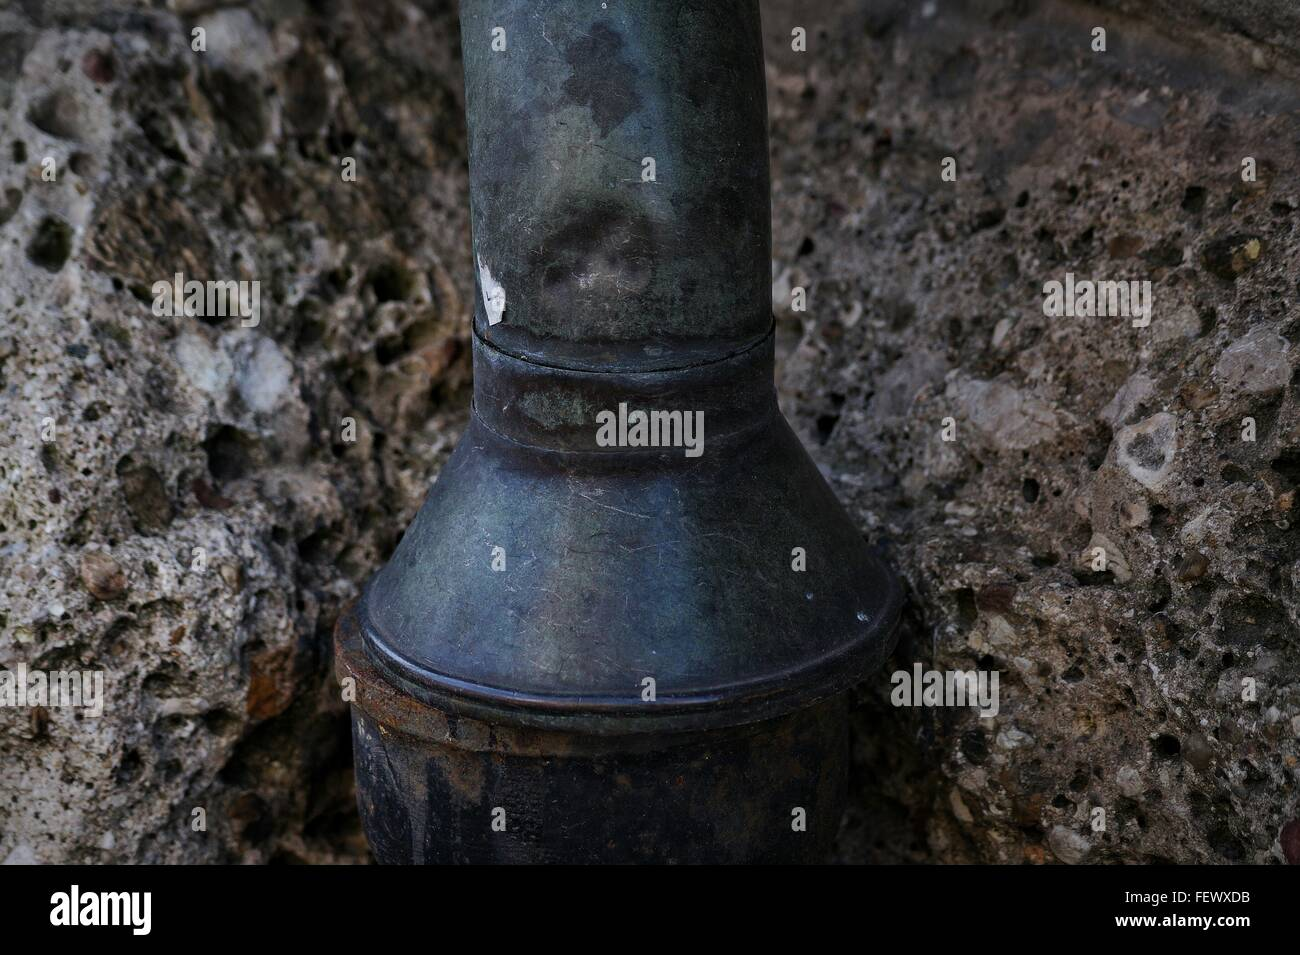 Close-Up Of Rusty Exhaustion Pipe - Stock Image